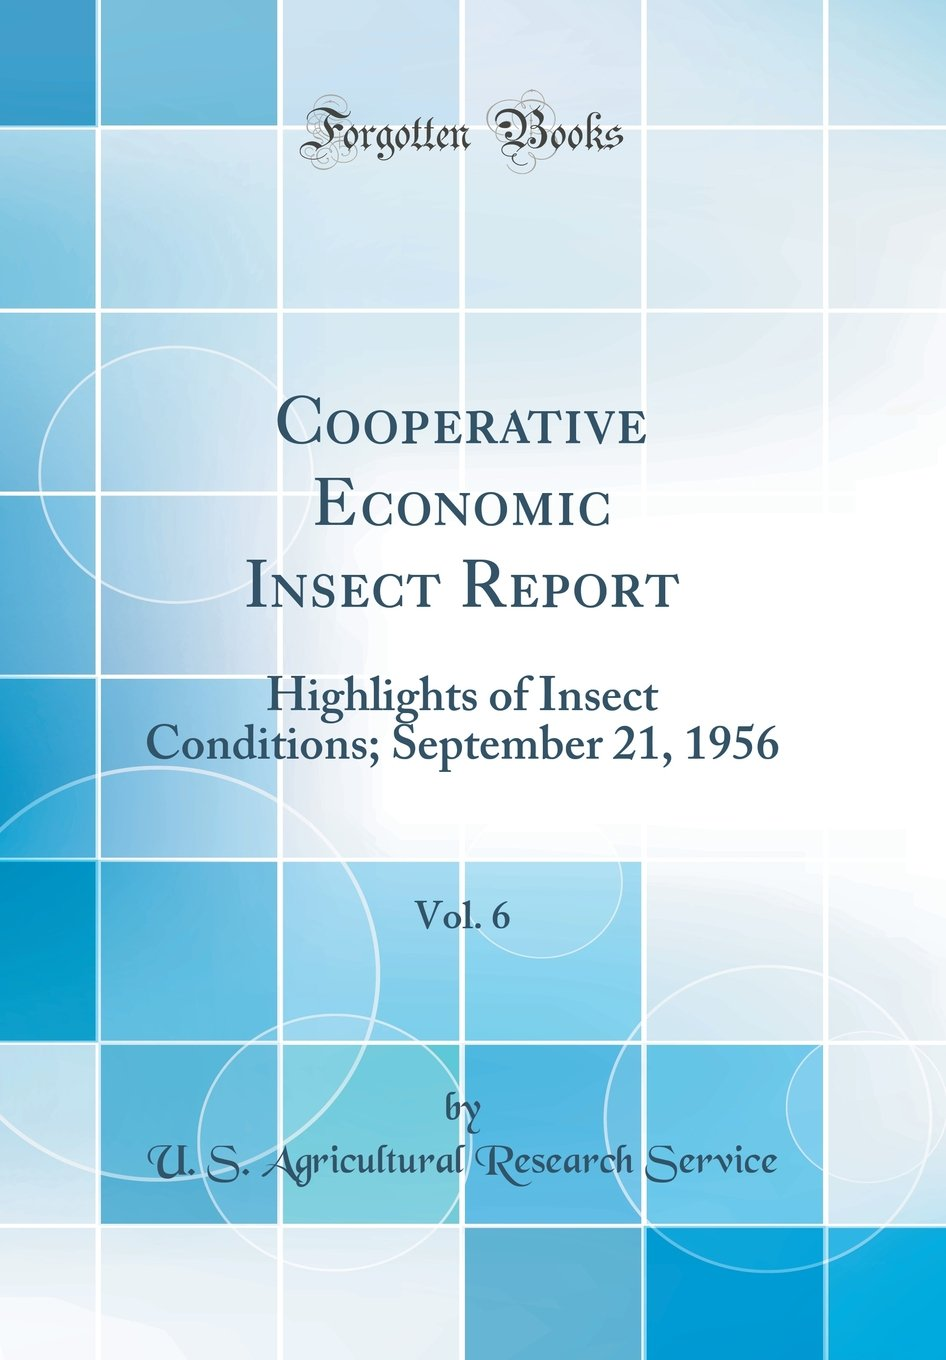 Cooperative Economic Insect Report, Vol. 6: Highlights of Insect Conditions; September 21, 1956 (Classic Reprint) pdf epub